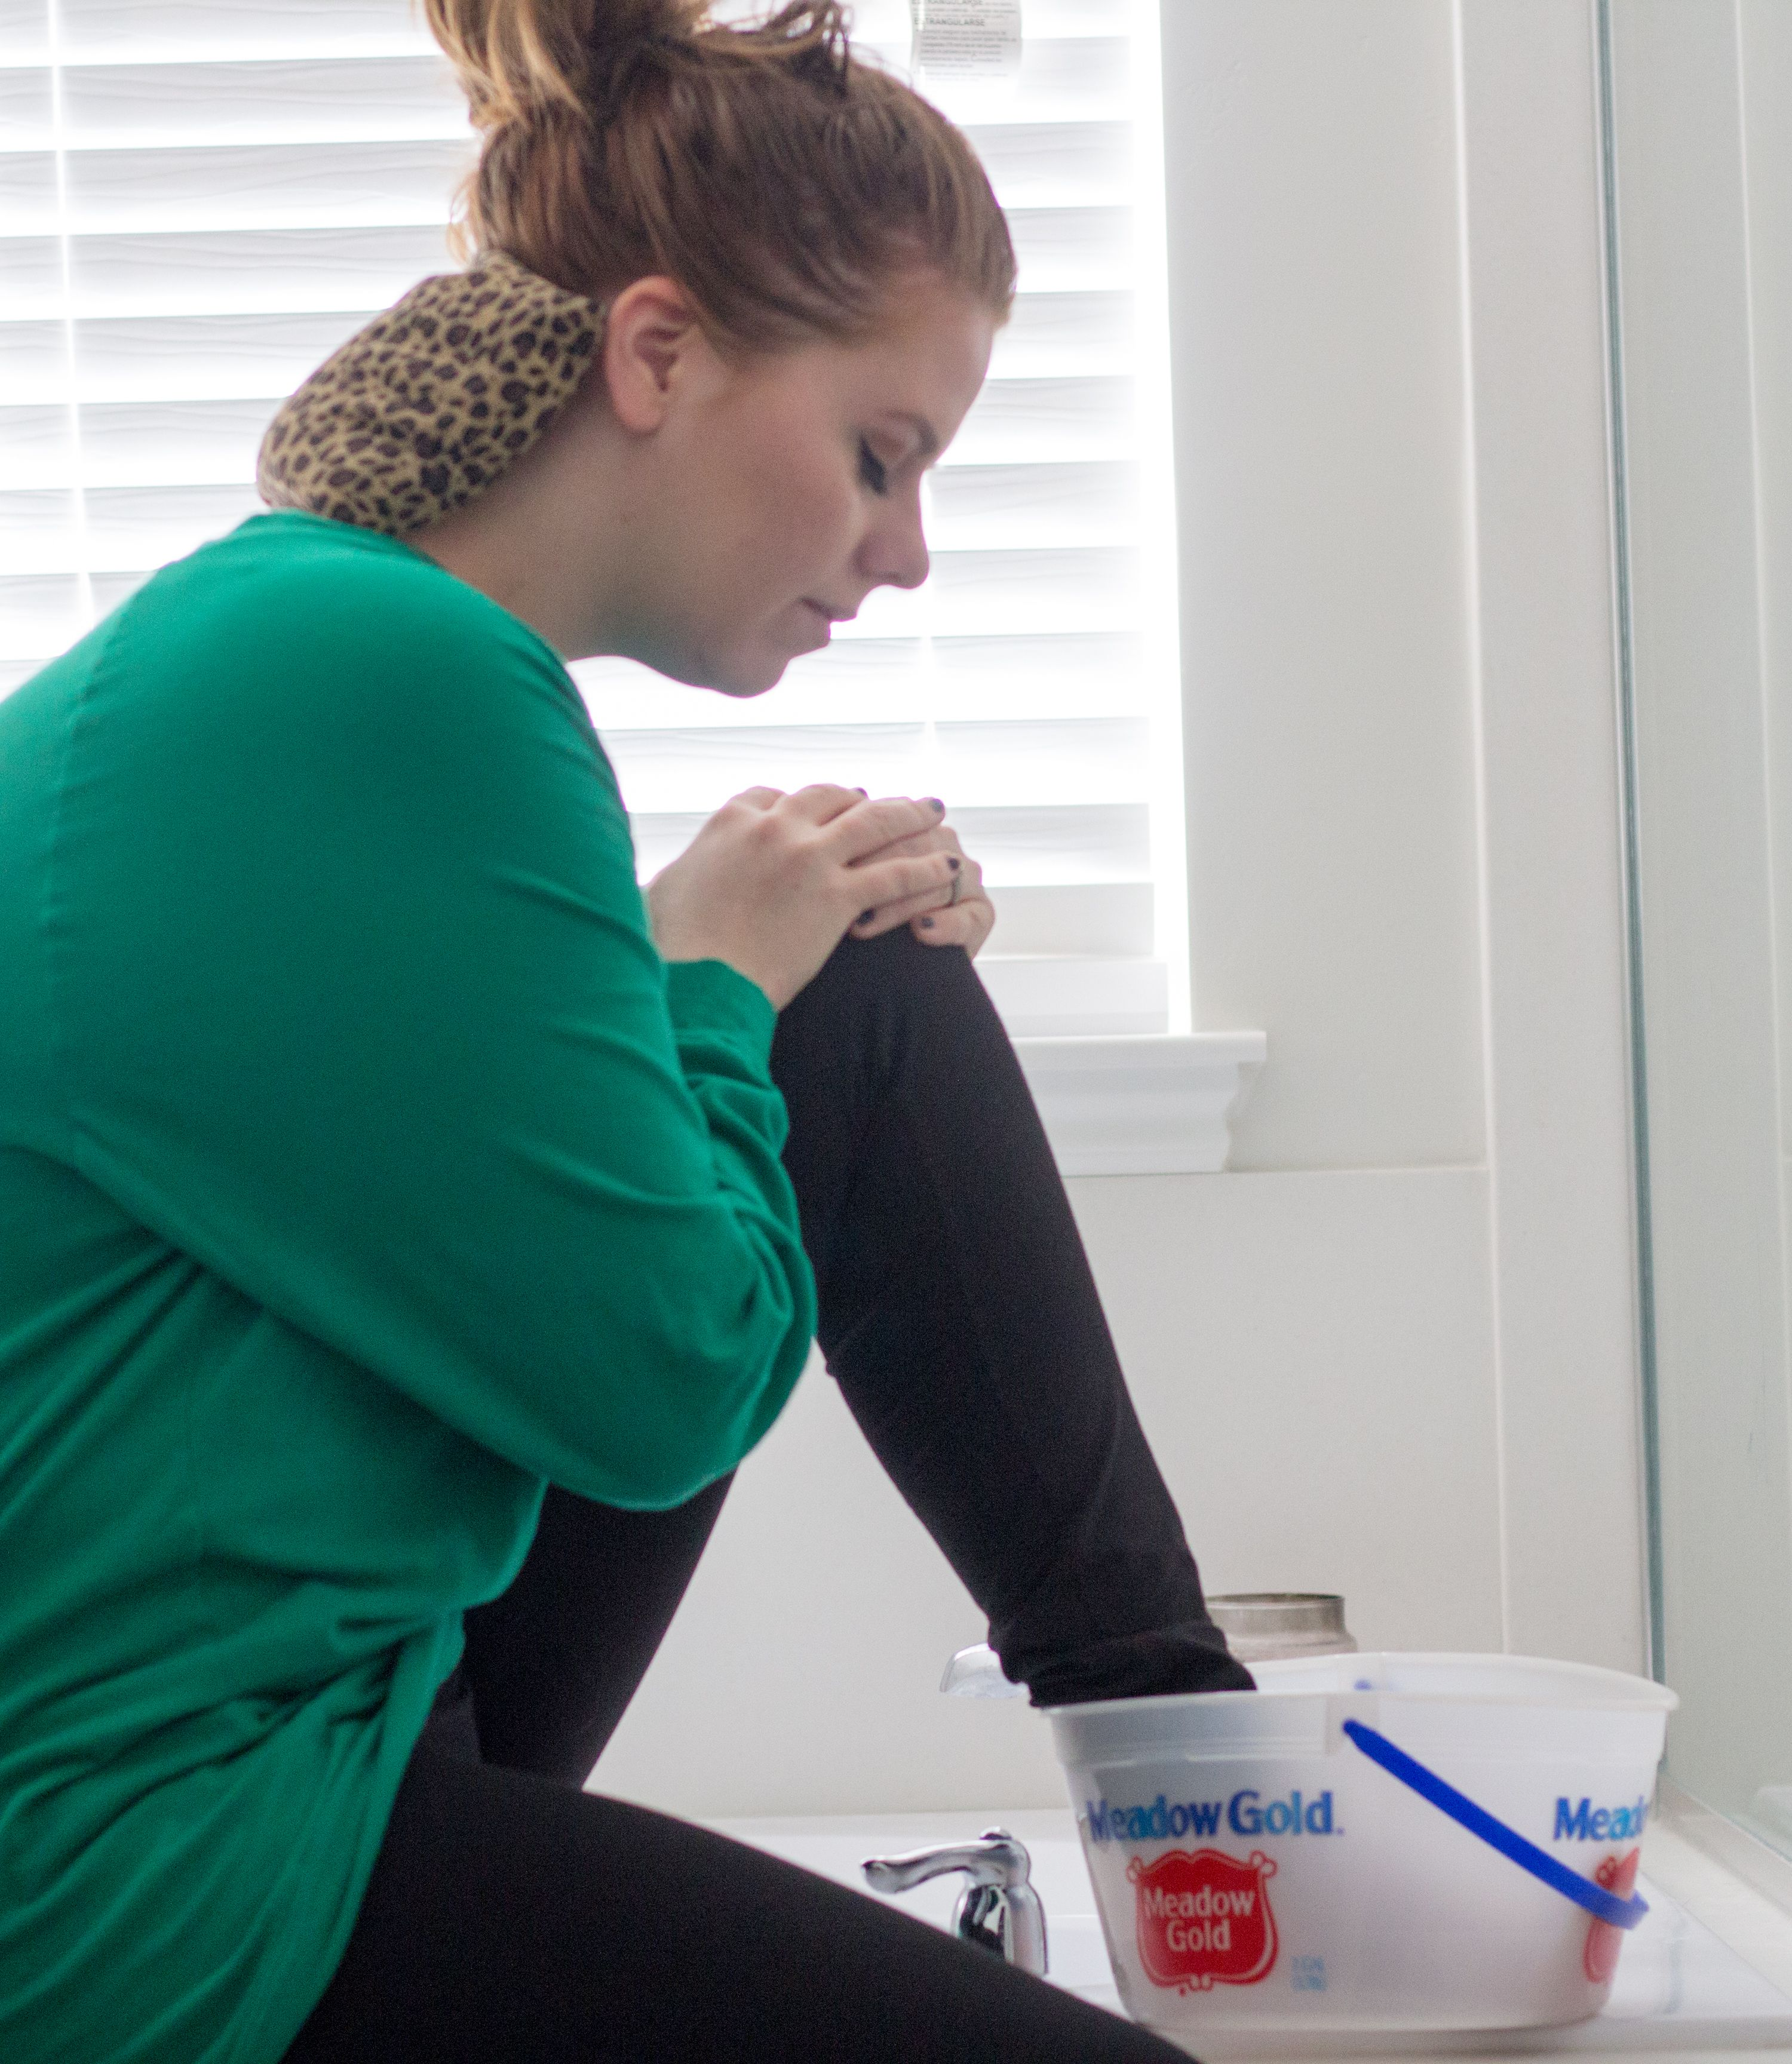 migraine foot bath. Tips on relieving migraine and joint pain. #StopPainNow #ad #cbias